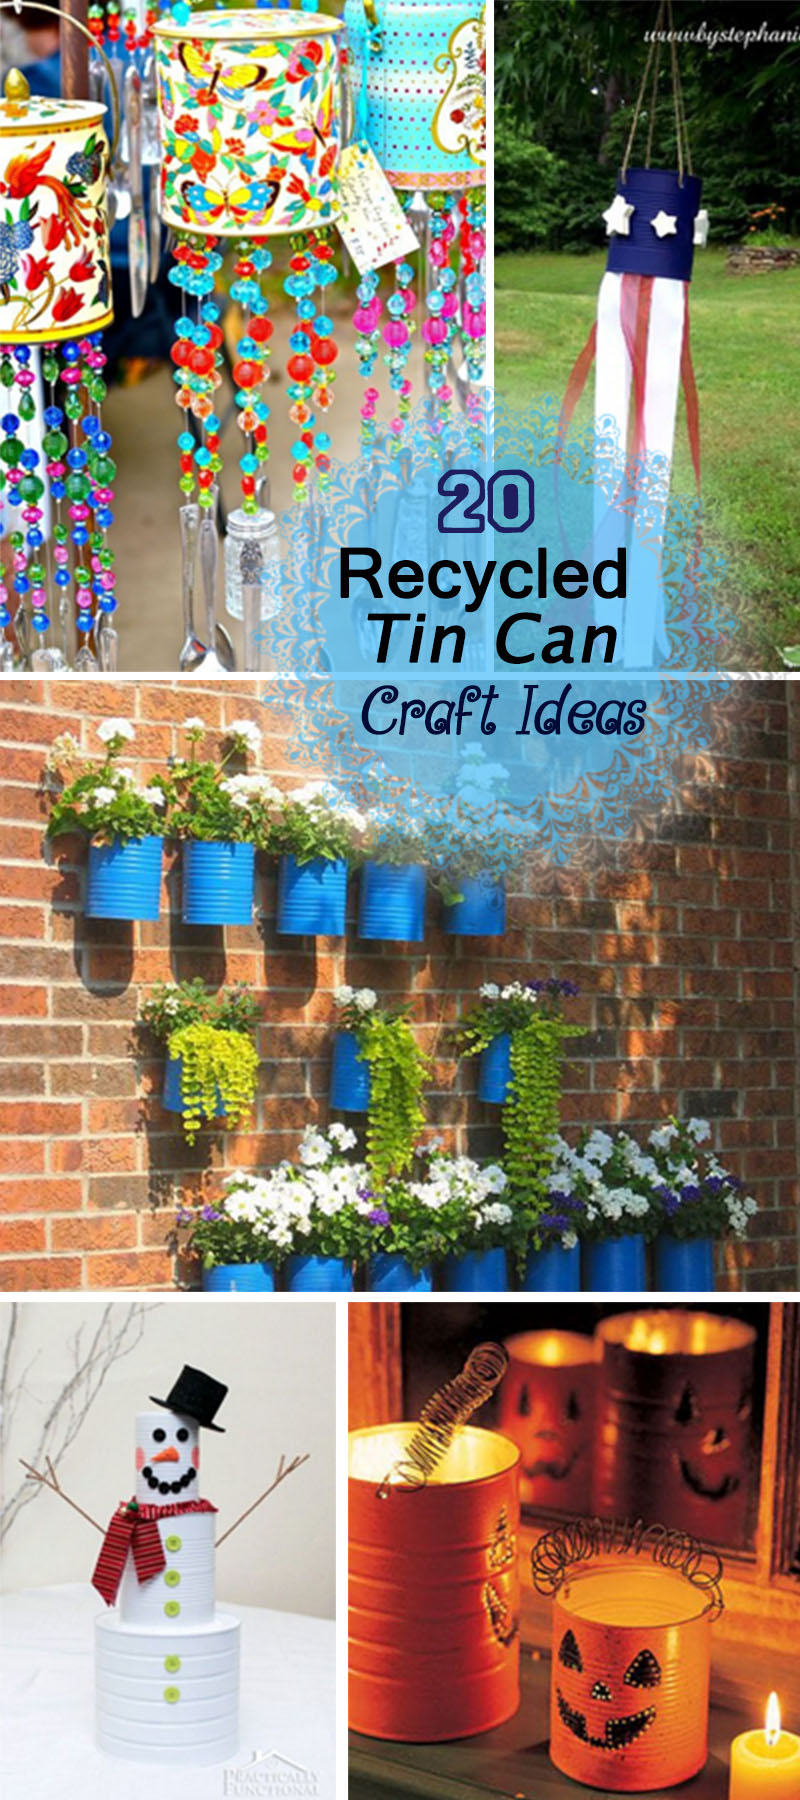 recycle craft ideas 20 recycled tin can craft ideas hative 2815